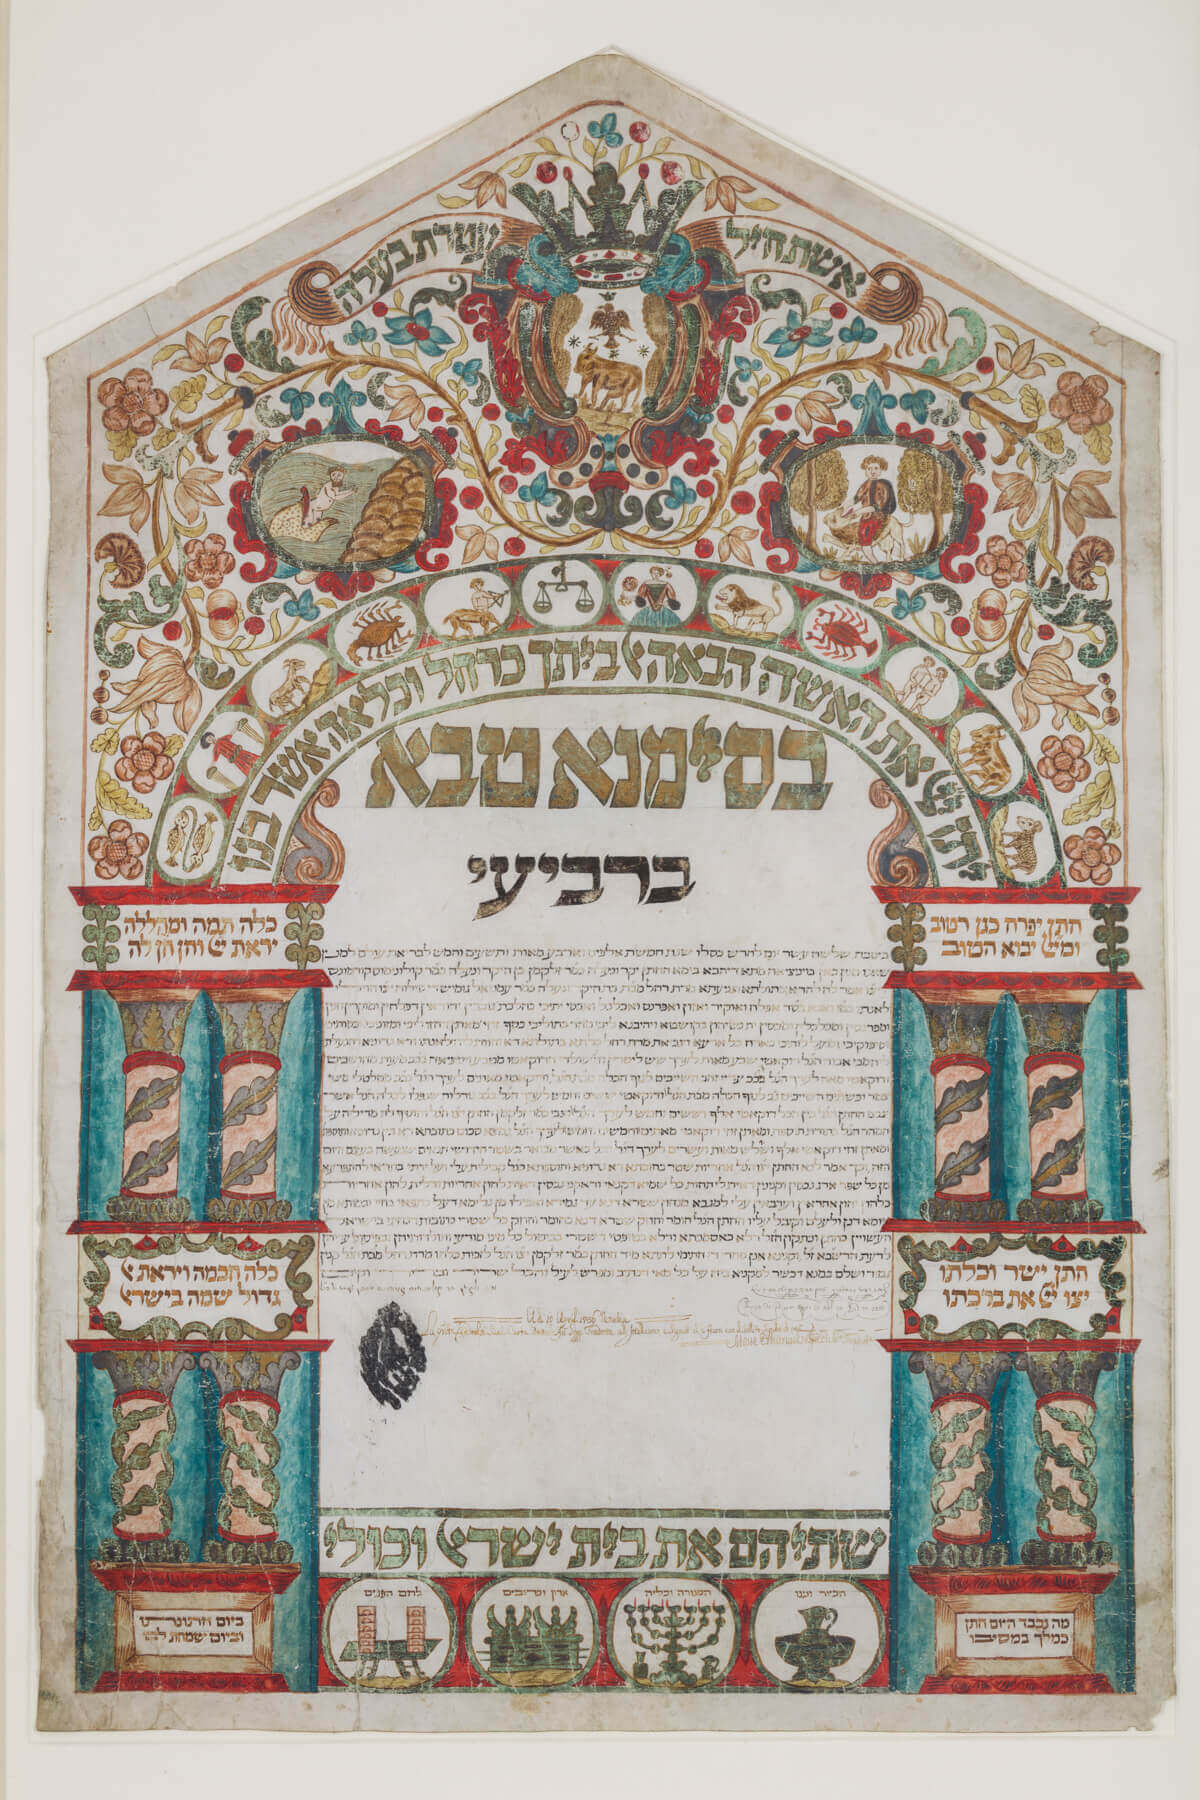 183. A RARE AND IMPORTANT KETUBAH